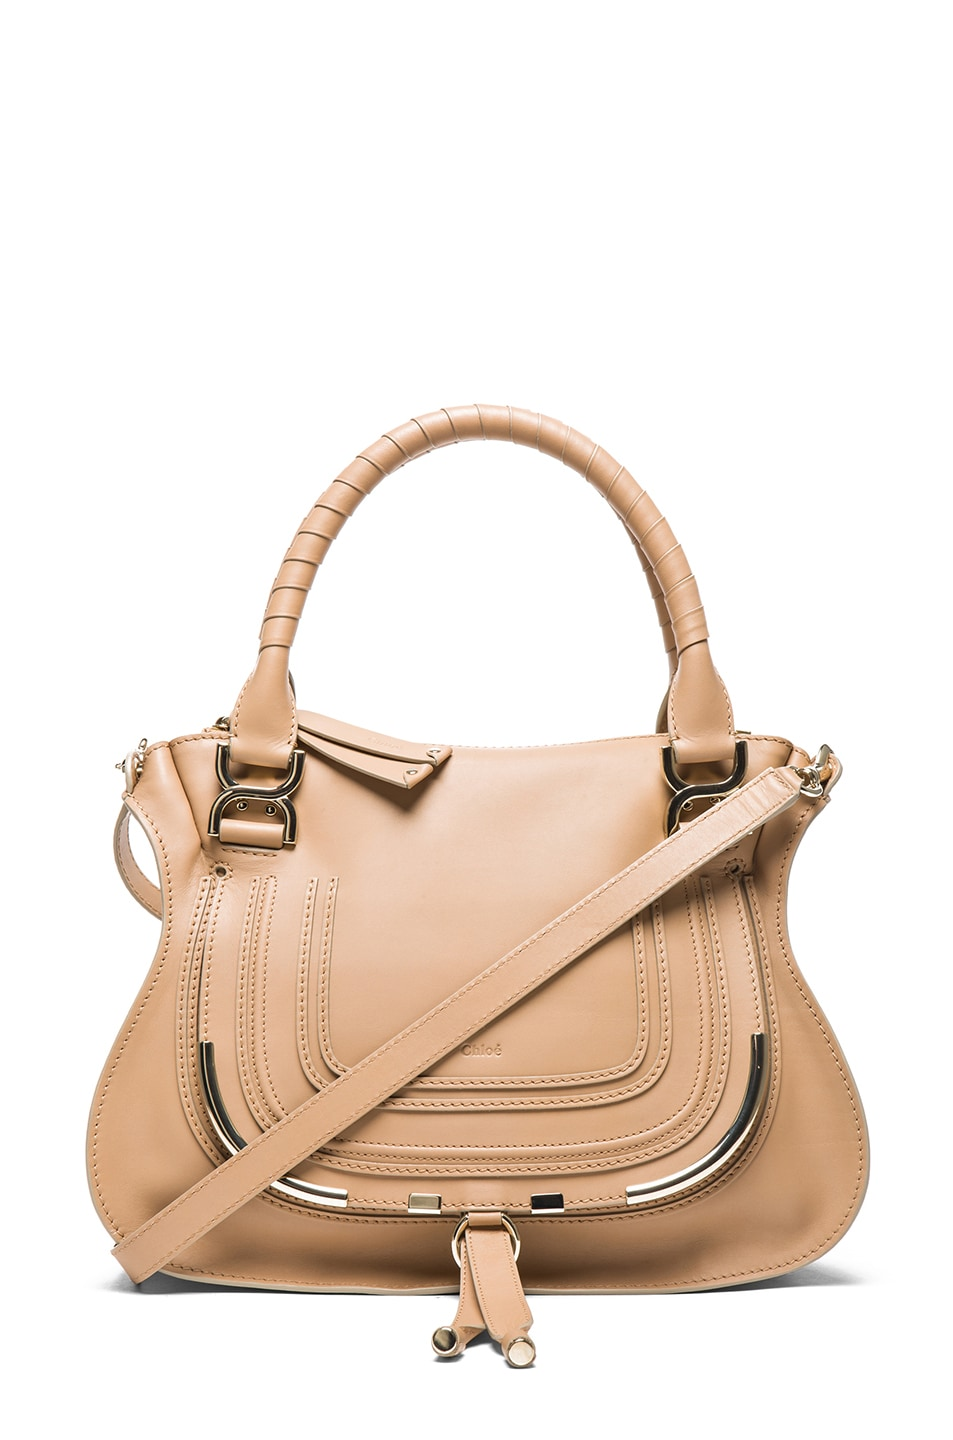 cb28891305784 Image 1 of Chloe Medium Marcie Shoulder Bag in Wet Sand